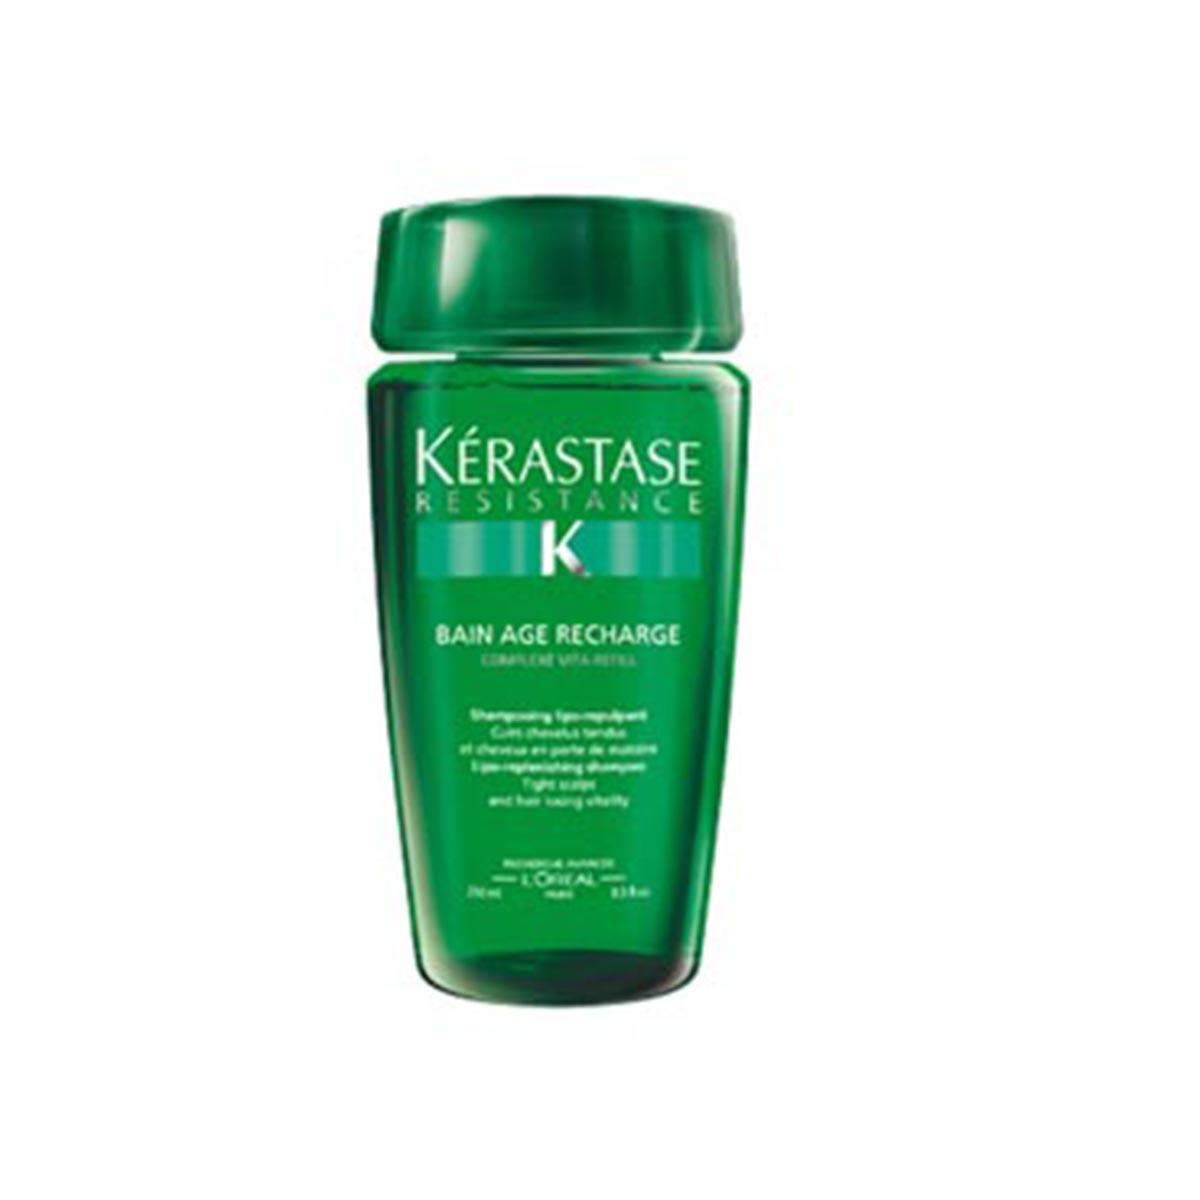 Kerastase fragrances Bain Age Recharge 250ml